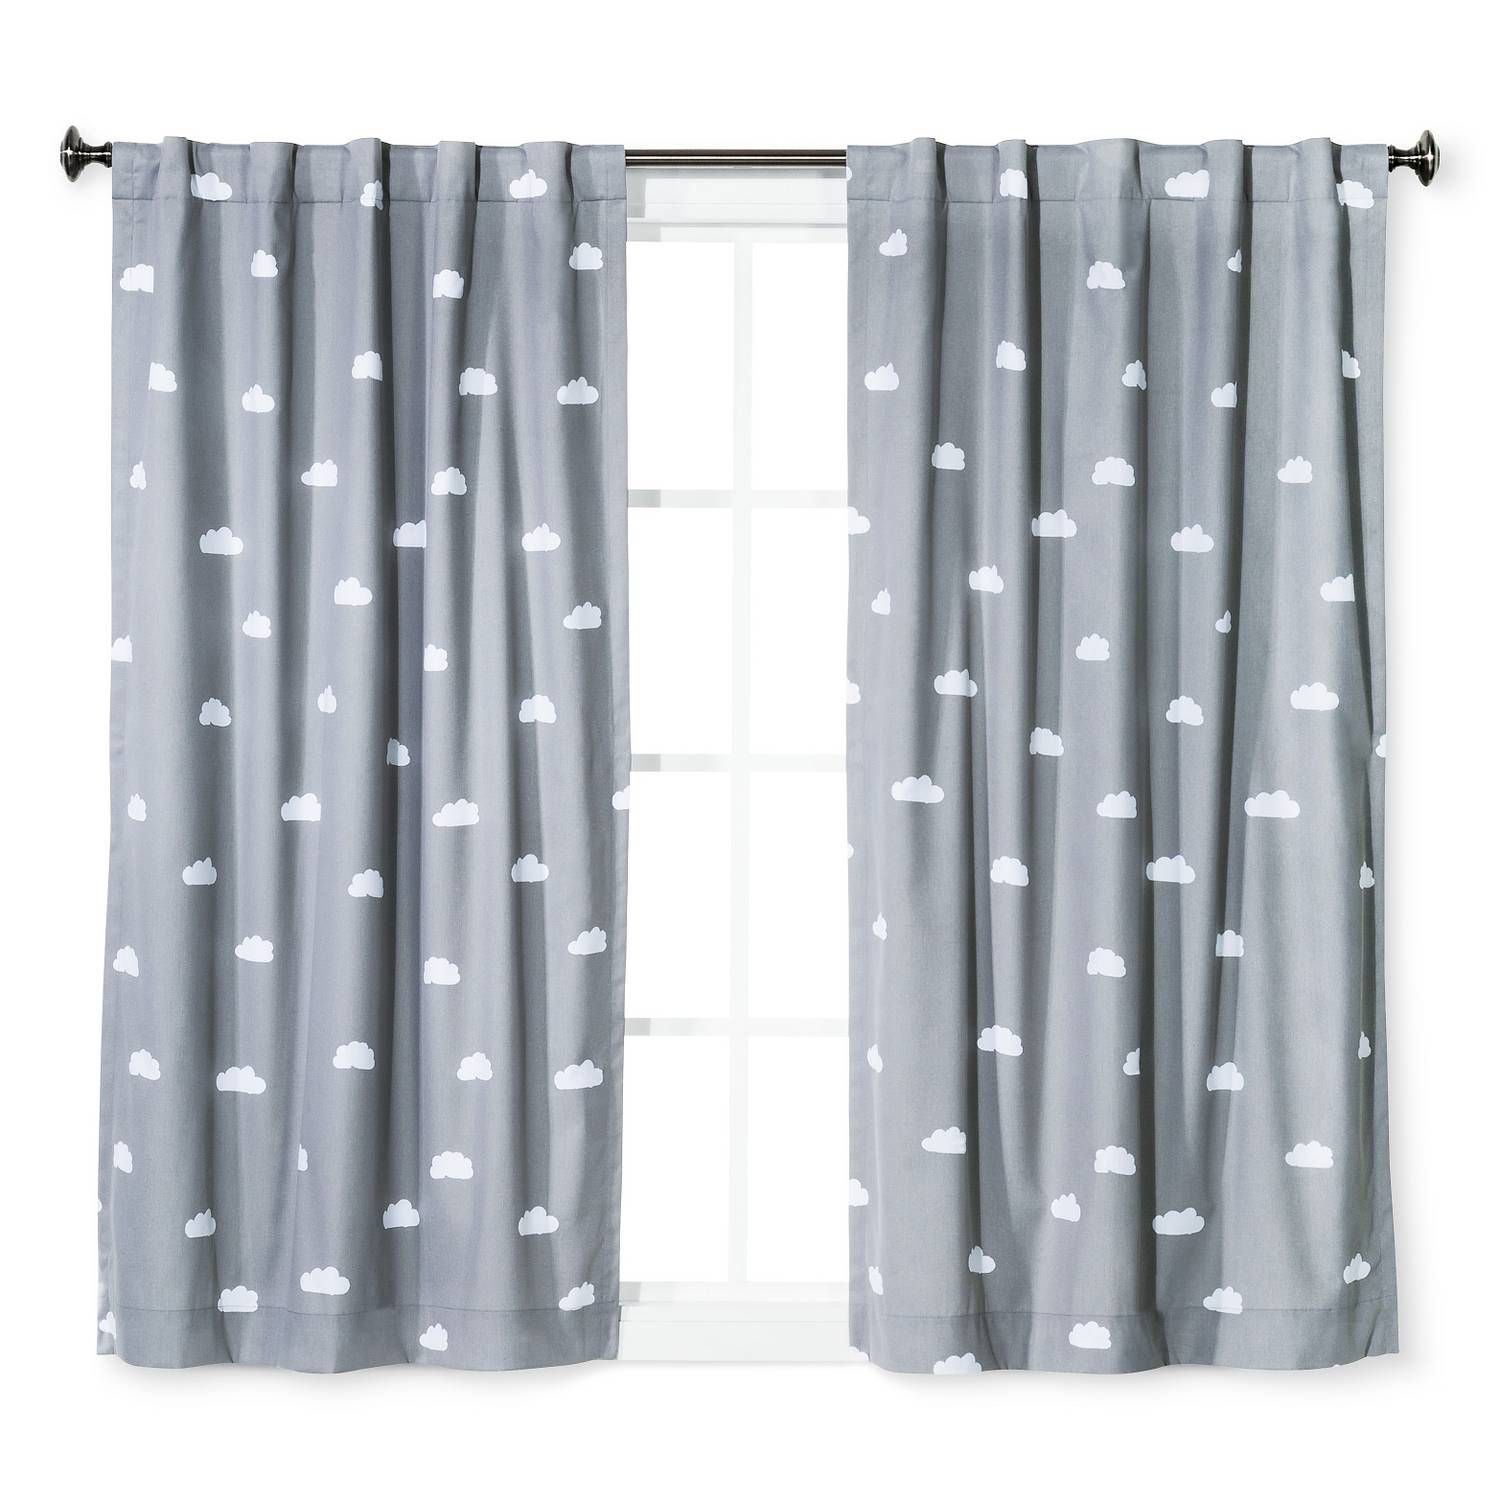 The 8 Best Blackout Curtains to Buy in 2018